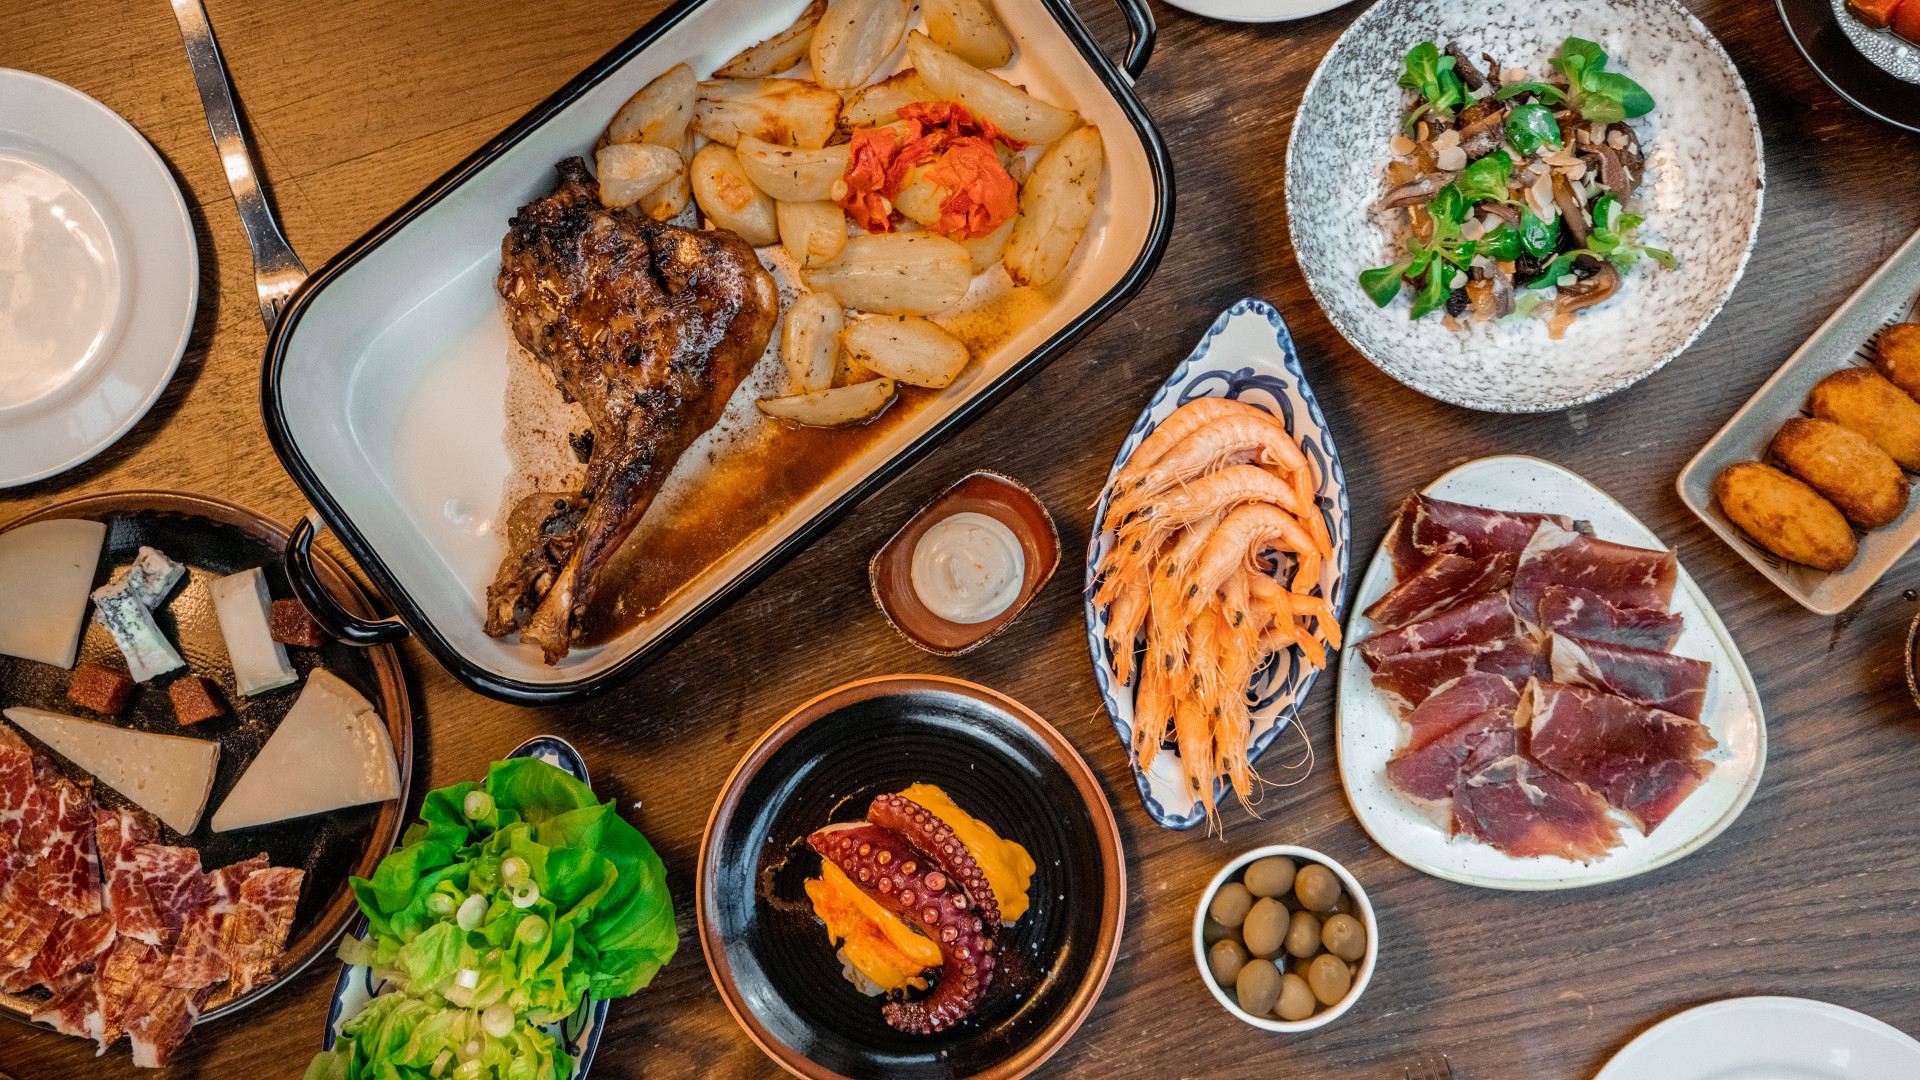 Iberica Feast at Home: meal kit review